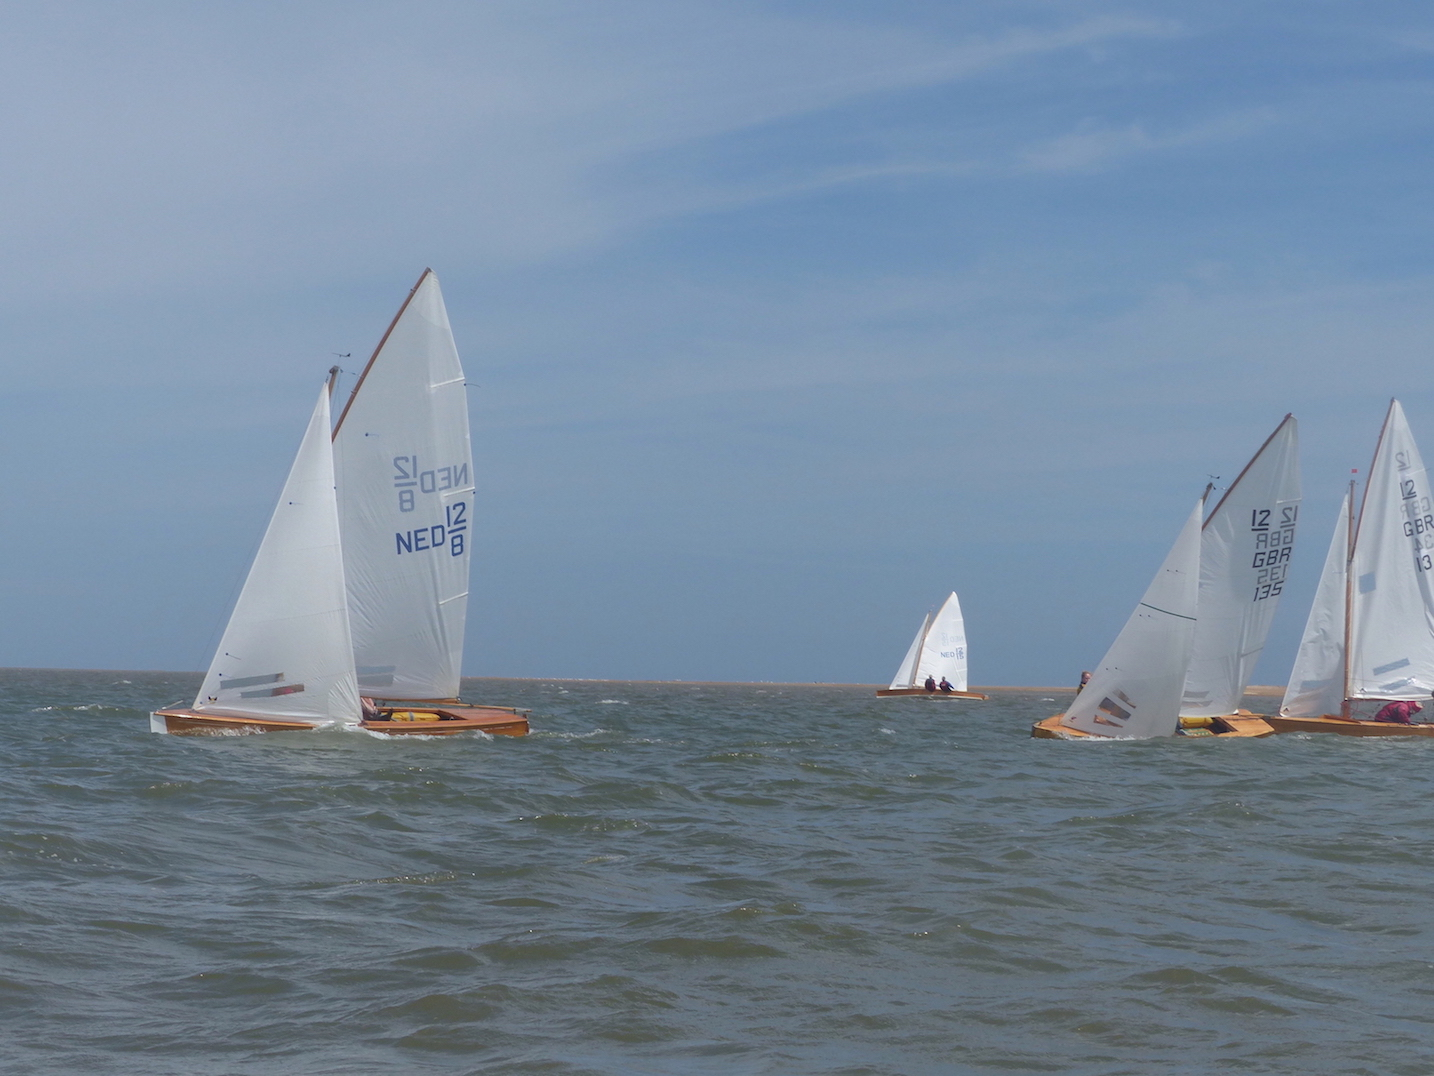 WSC sails catch light in background